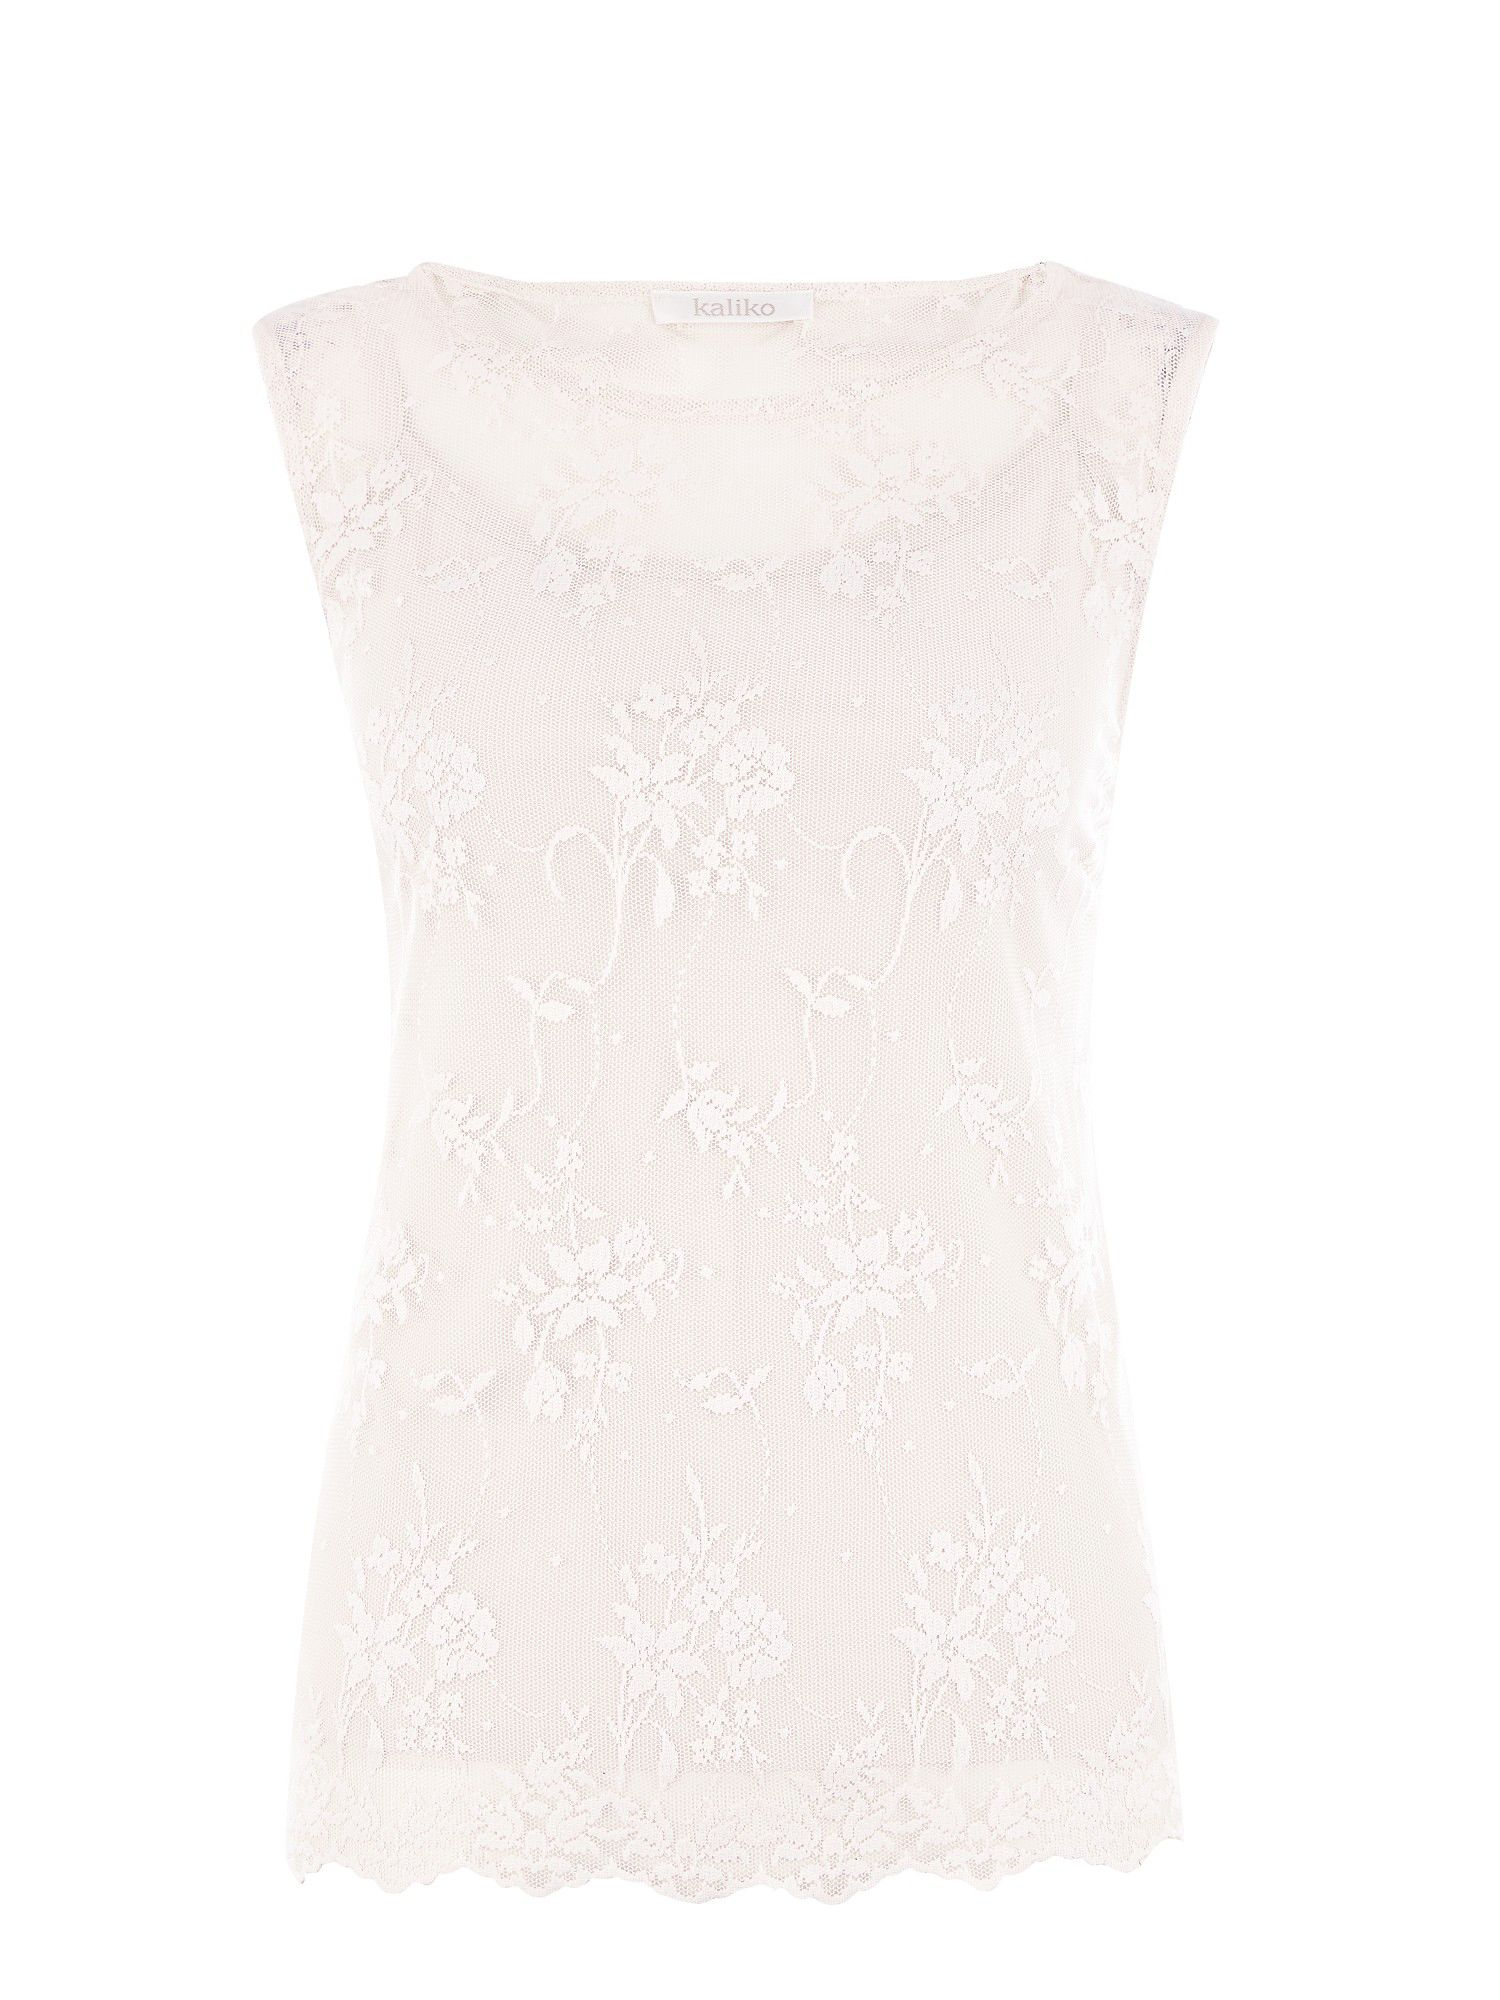 Ivory lace top and lace trim cami